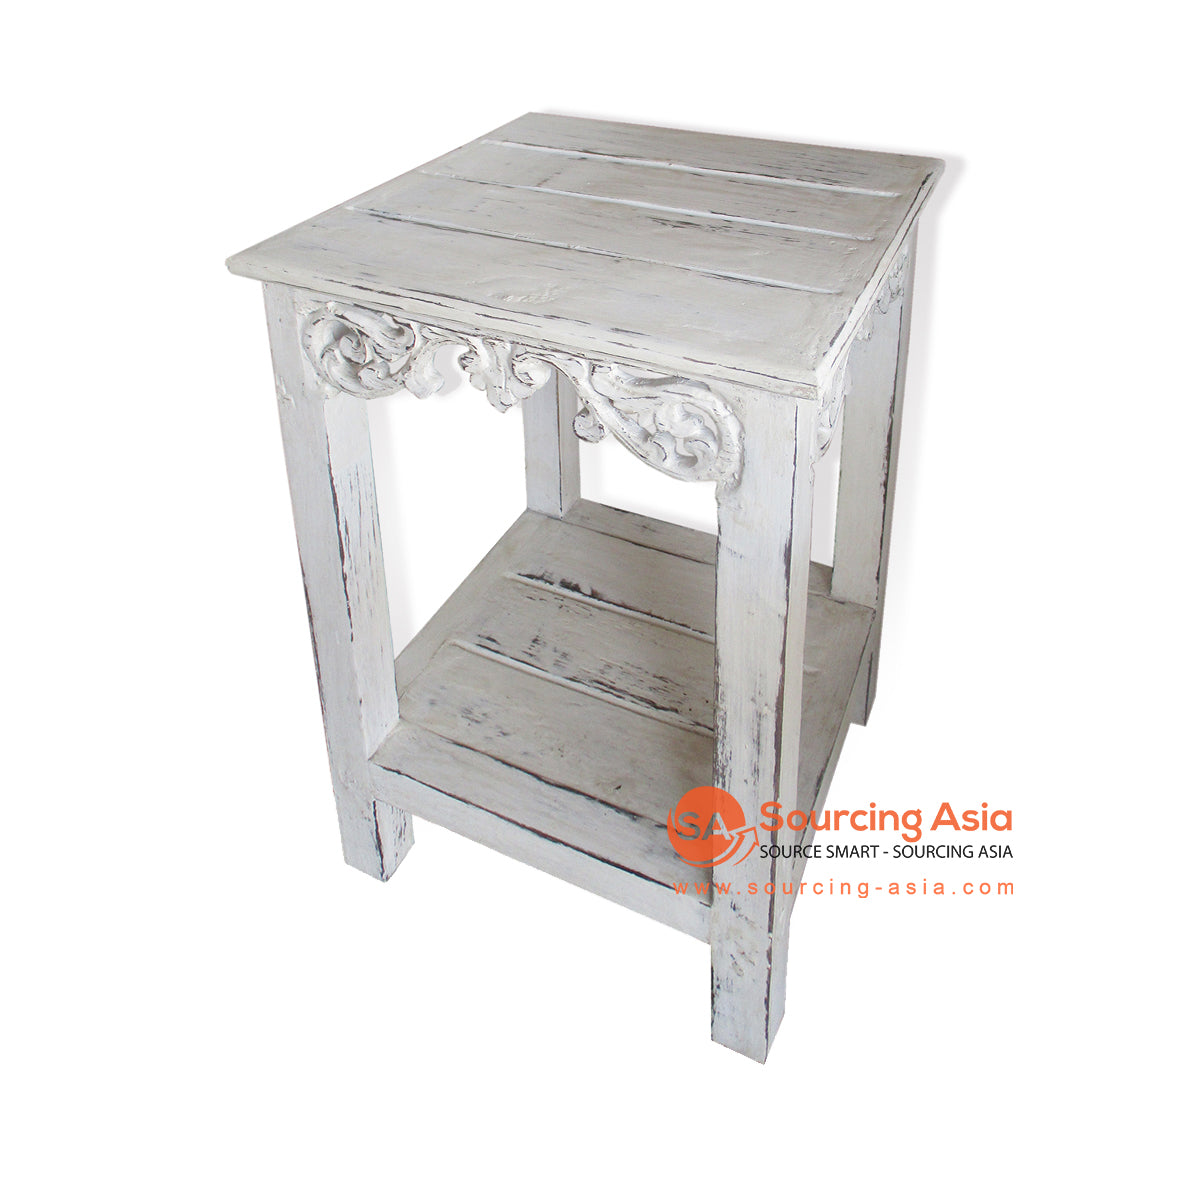 THE007S SIDE TABLE WHITE WASH